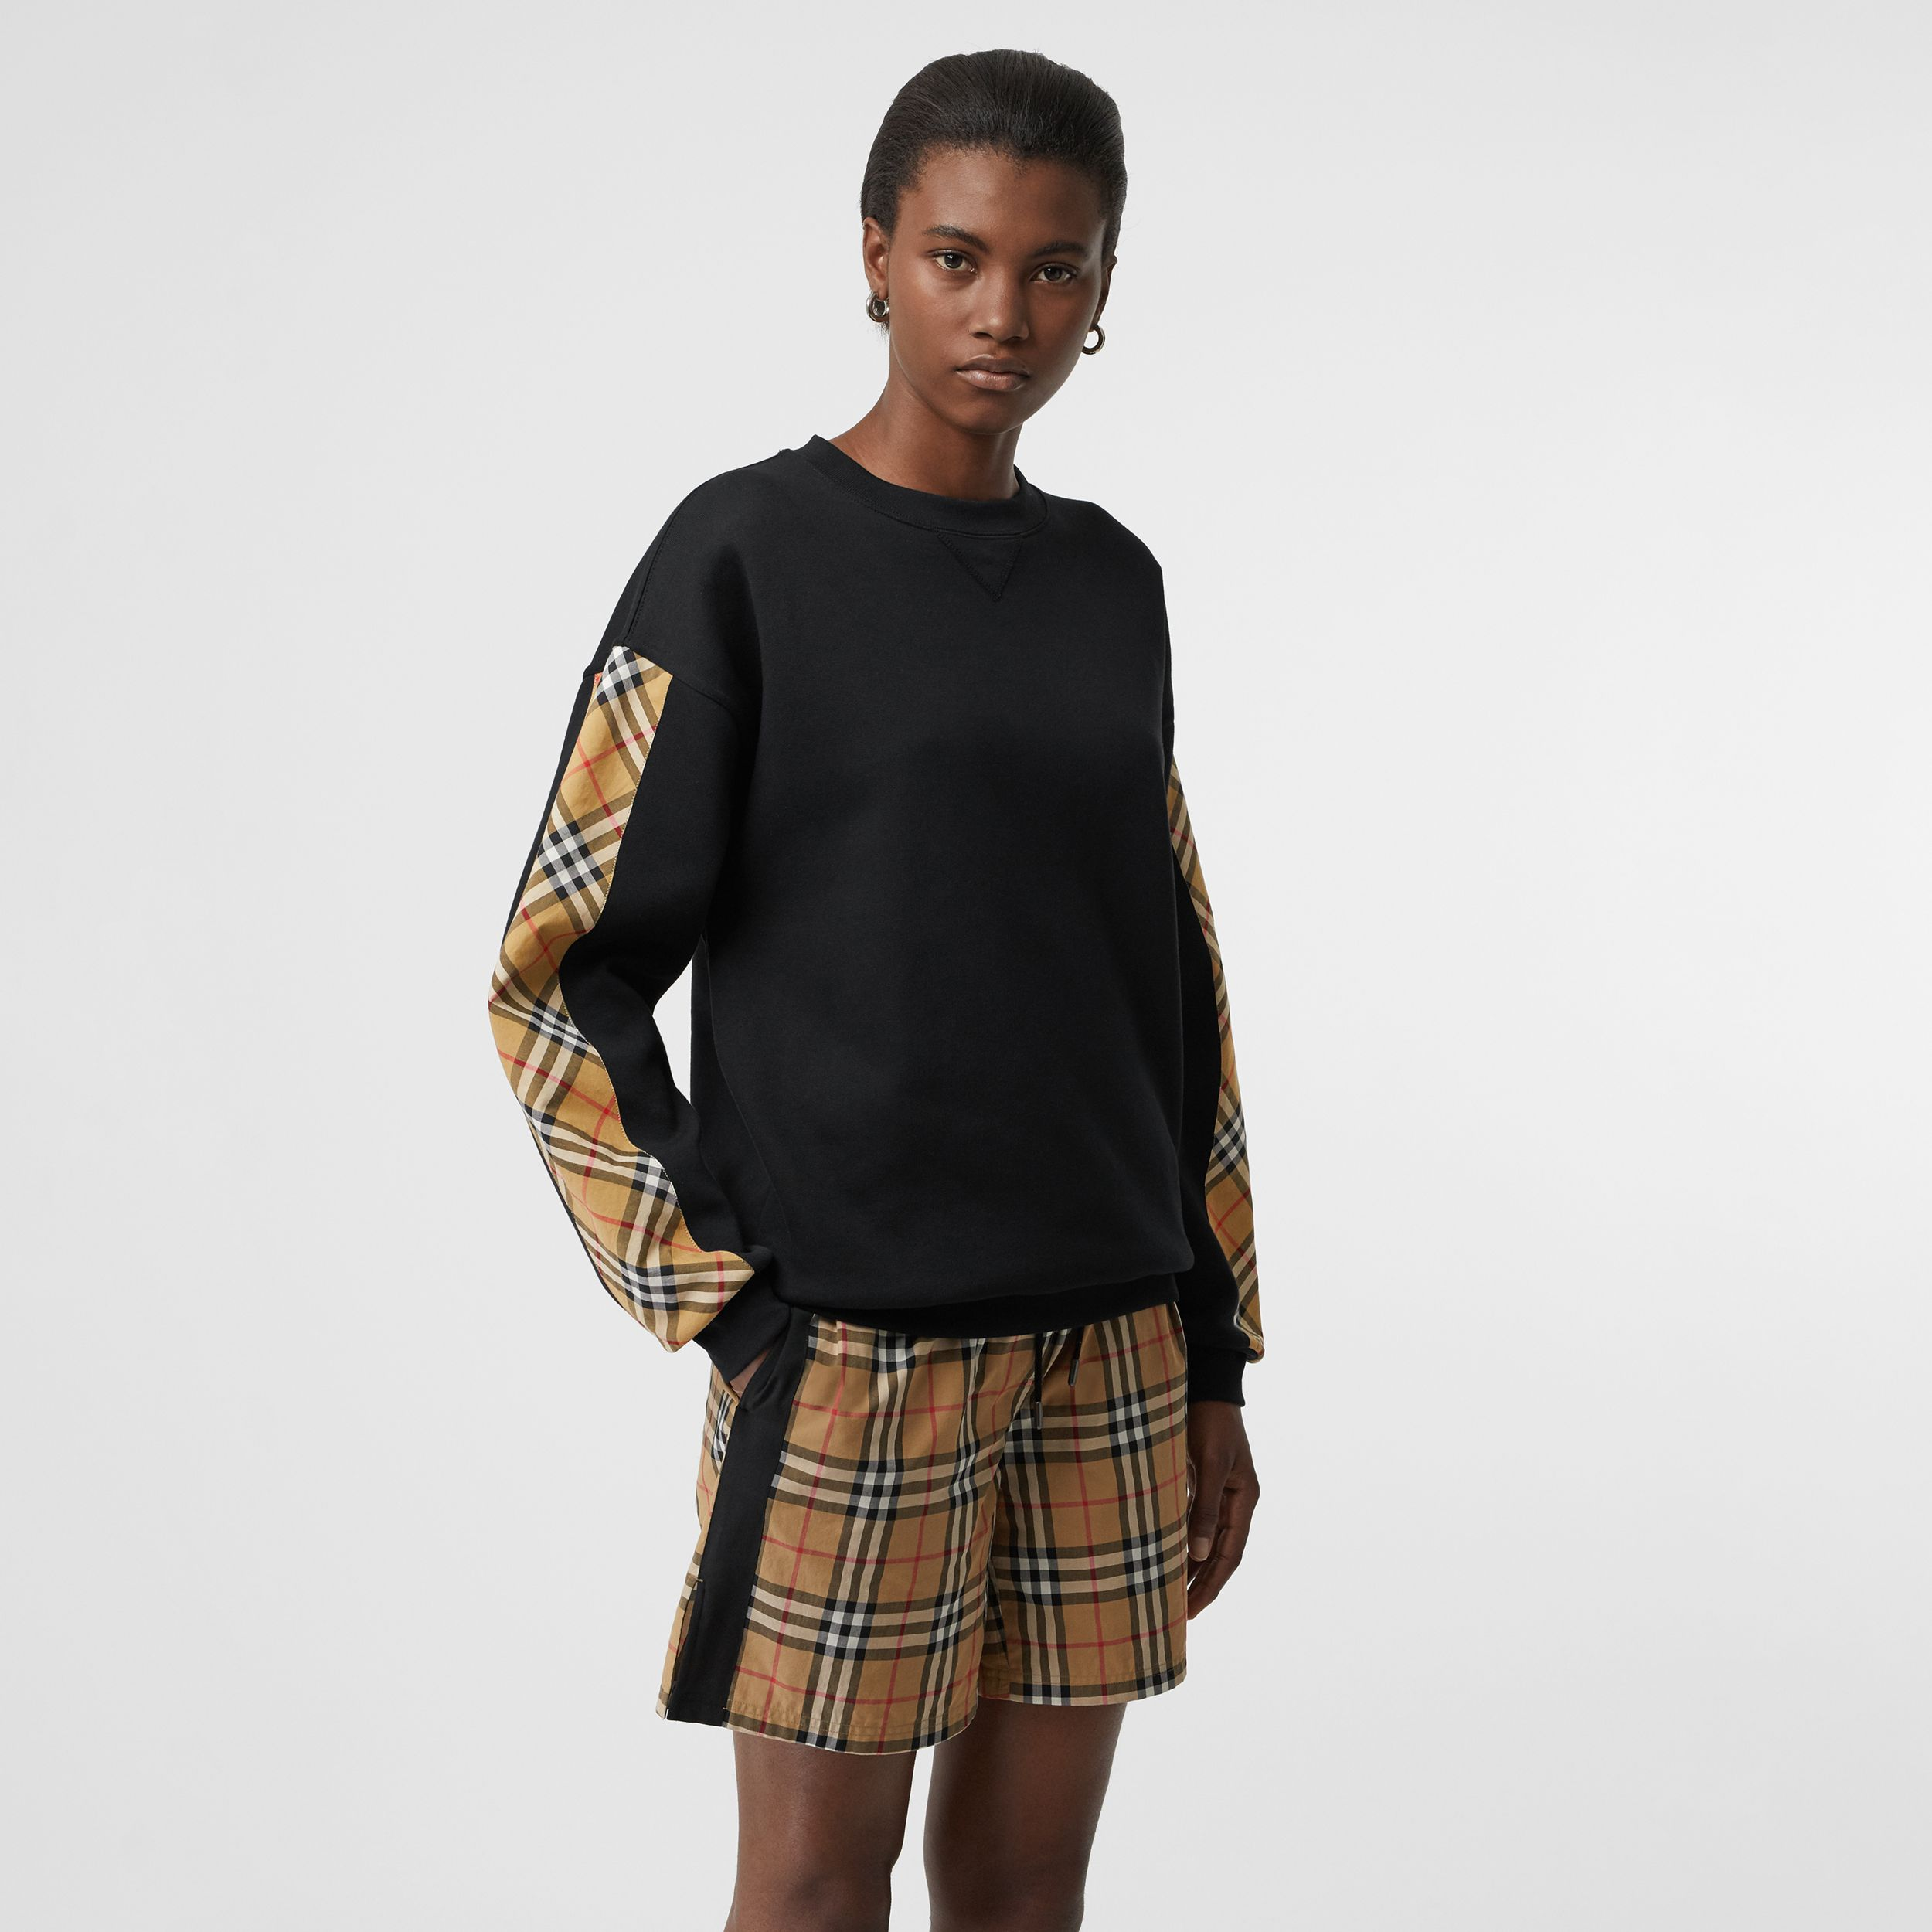 Vintage Check Detail Cotton Blend Sweatshirt in Black - Women | Burberry United States - 1